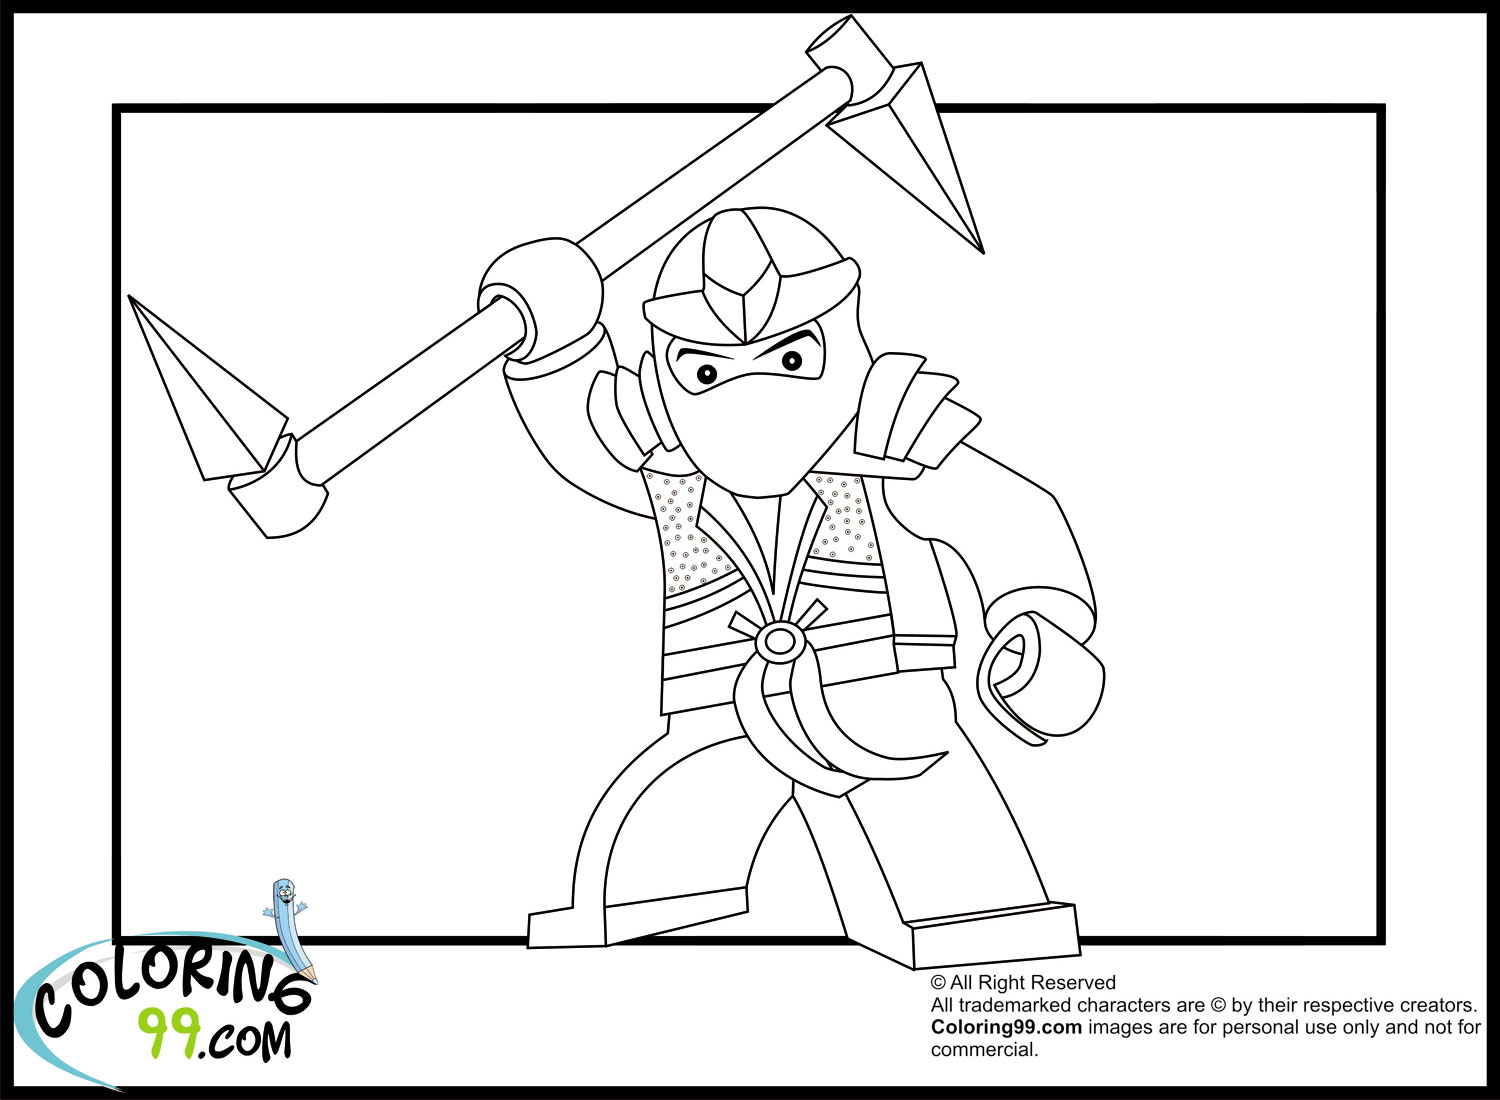 Printable Lego Colouring Pictures : Lego ninjago coloring pages free printable pictures